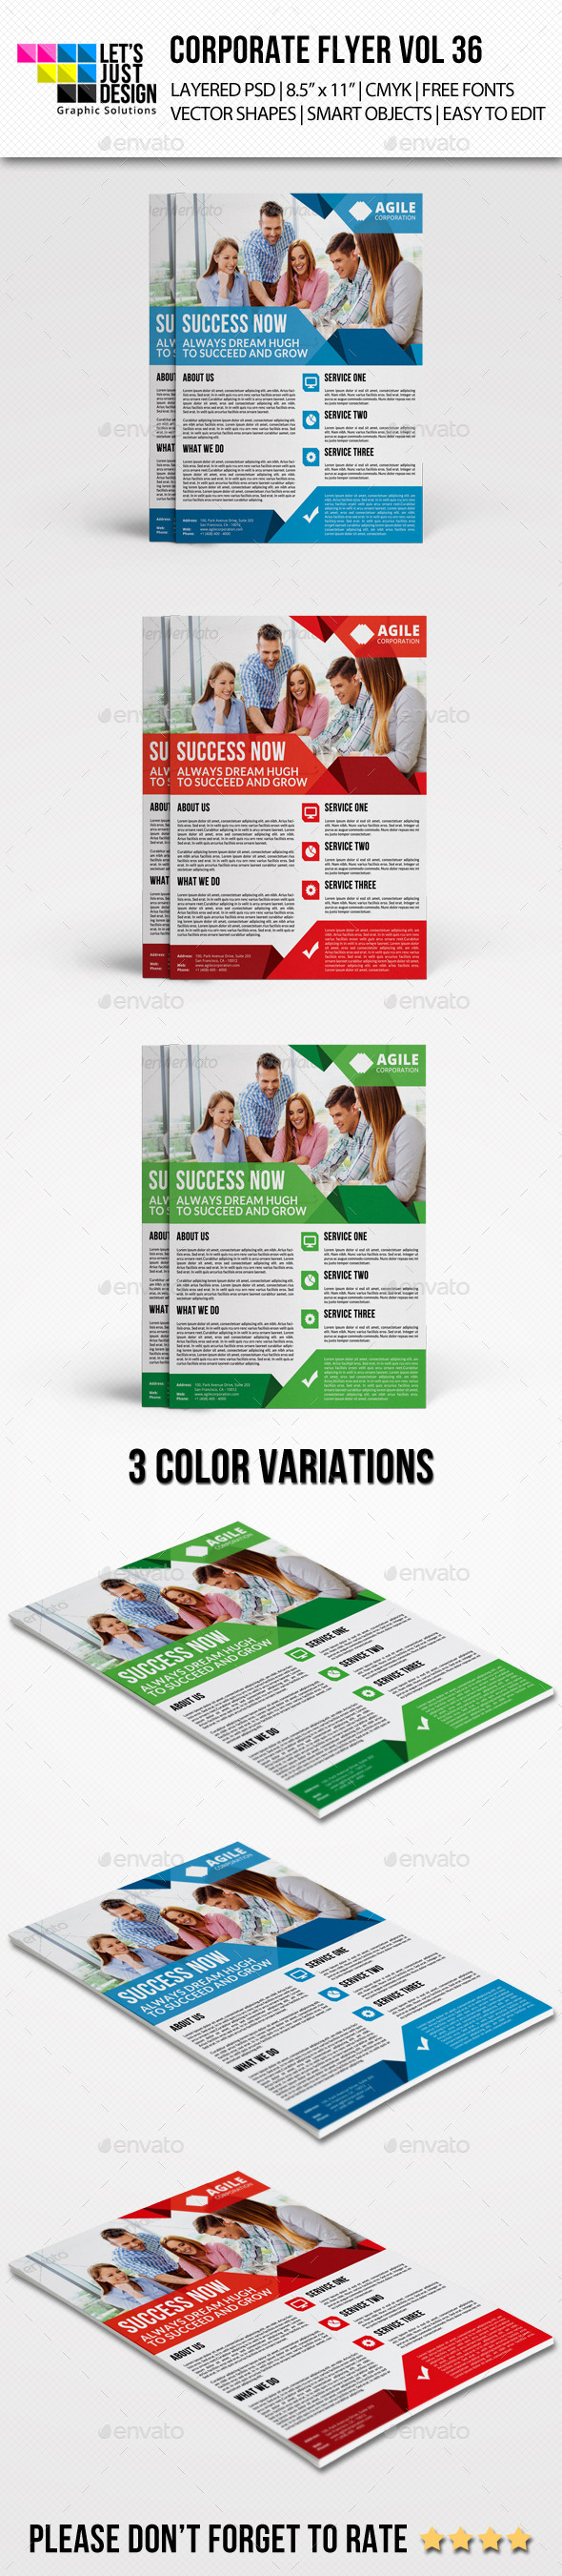 GraphicRiver Corporate Flyer Template Vol 36 9159897